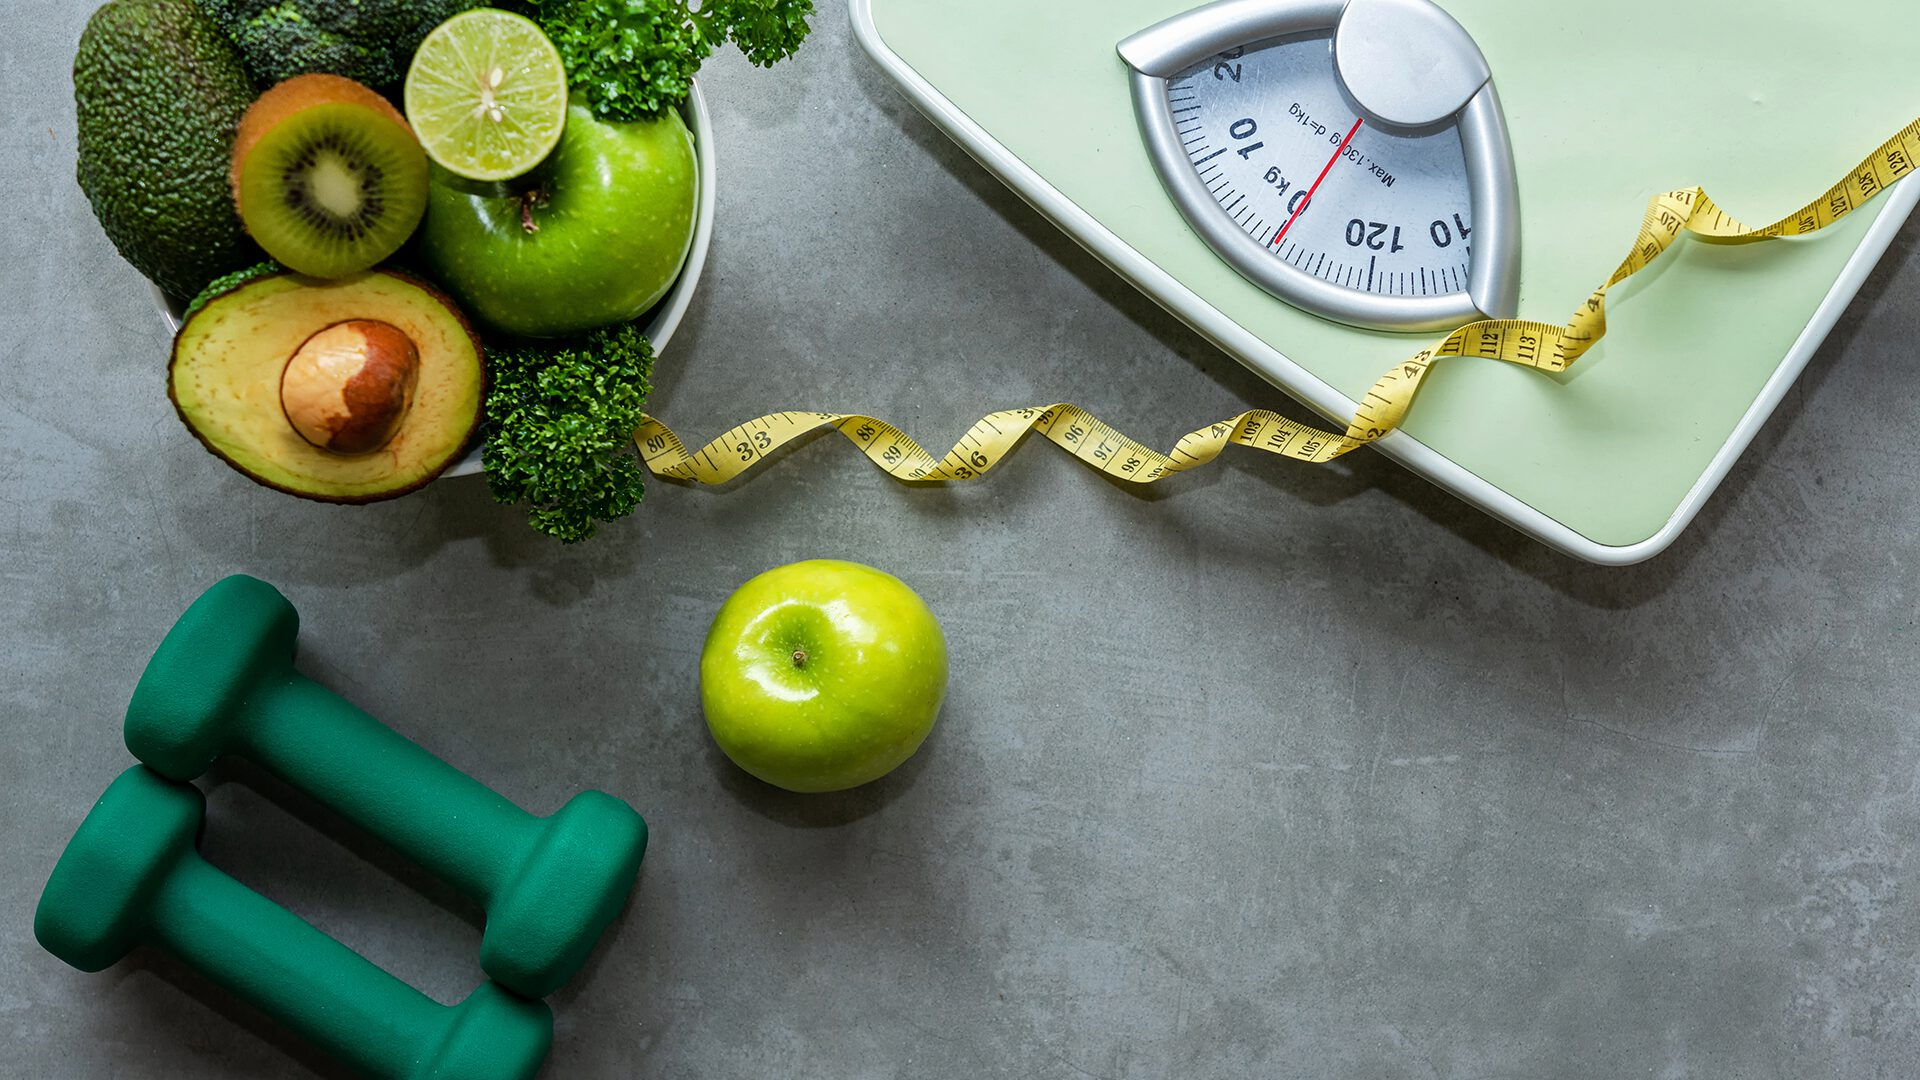 The healthiest way to lose weight